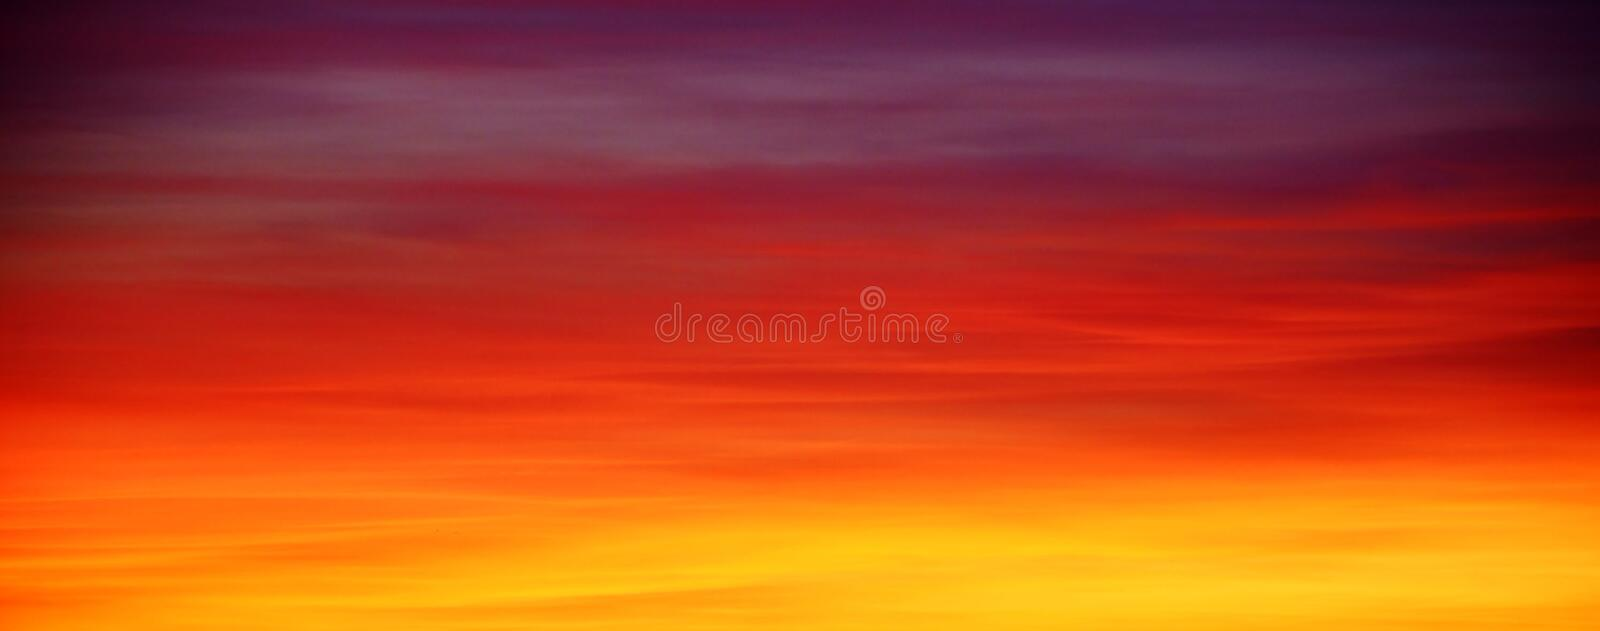 Sky, Red Sky At Morning, Afterglow, Orange royalty free stock photos